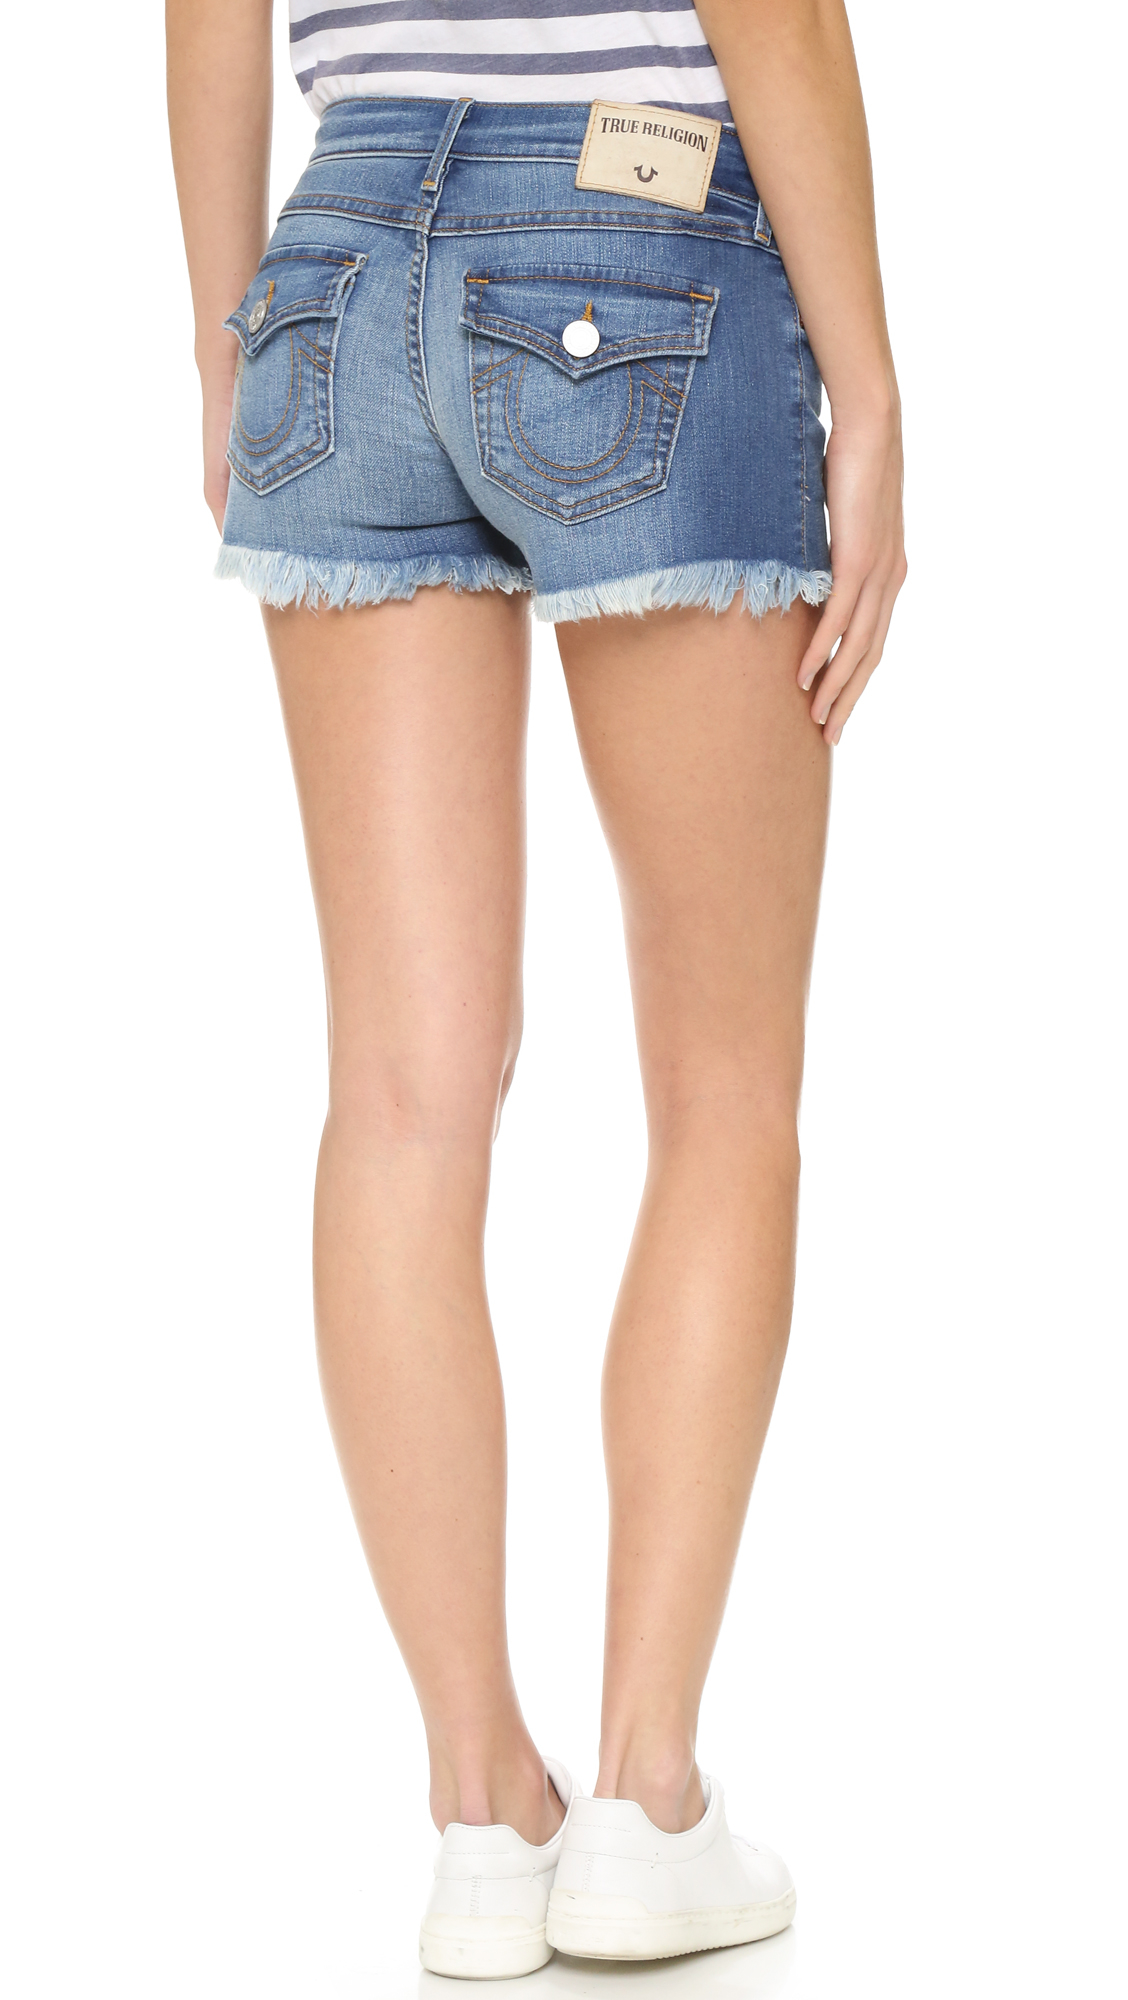 fc9437978 True Religion Keira Low Rise Shorts in Blue - Lyst